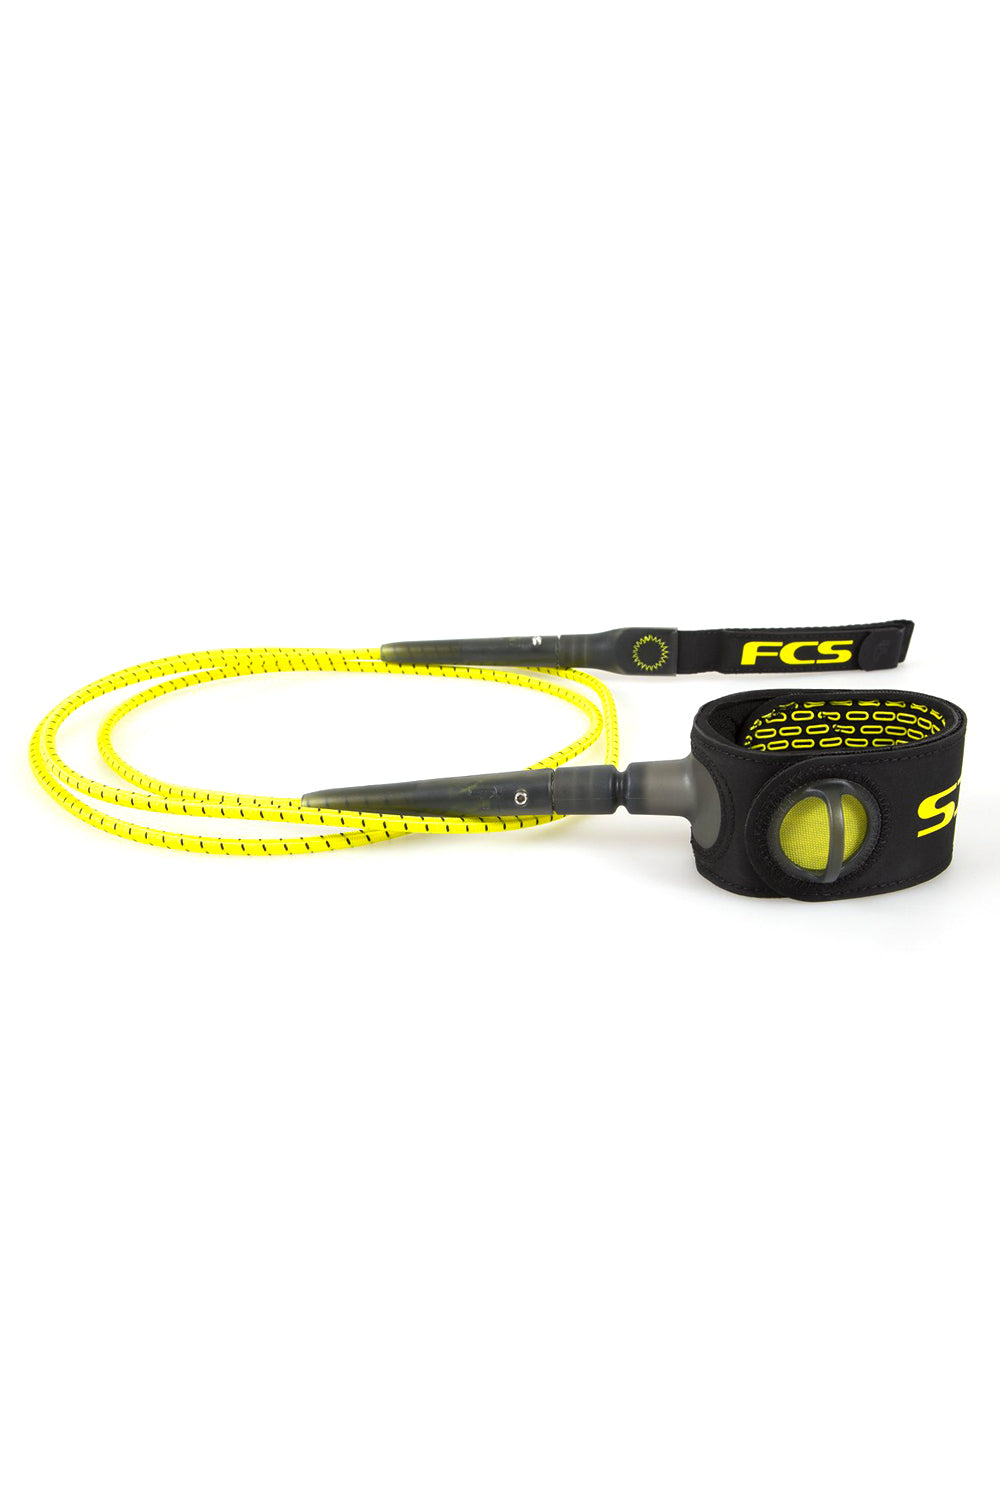 6ft FCS Freedom Leash